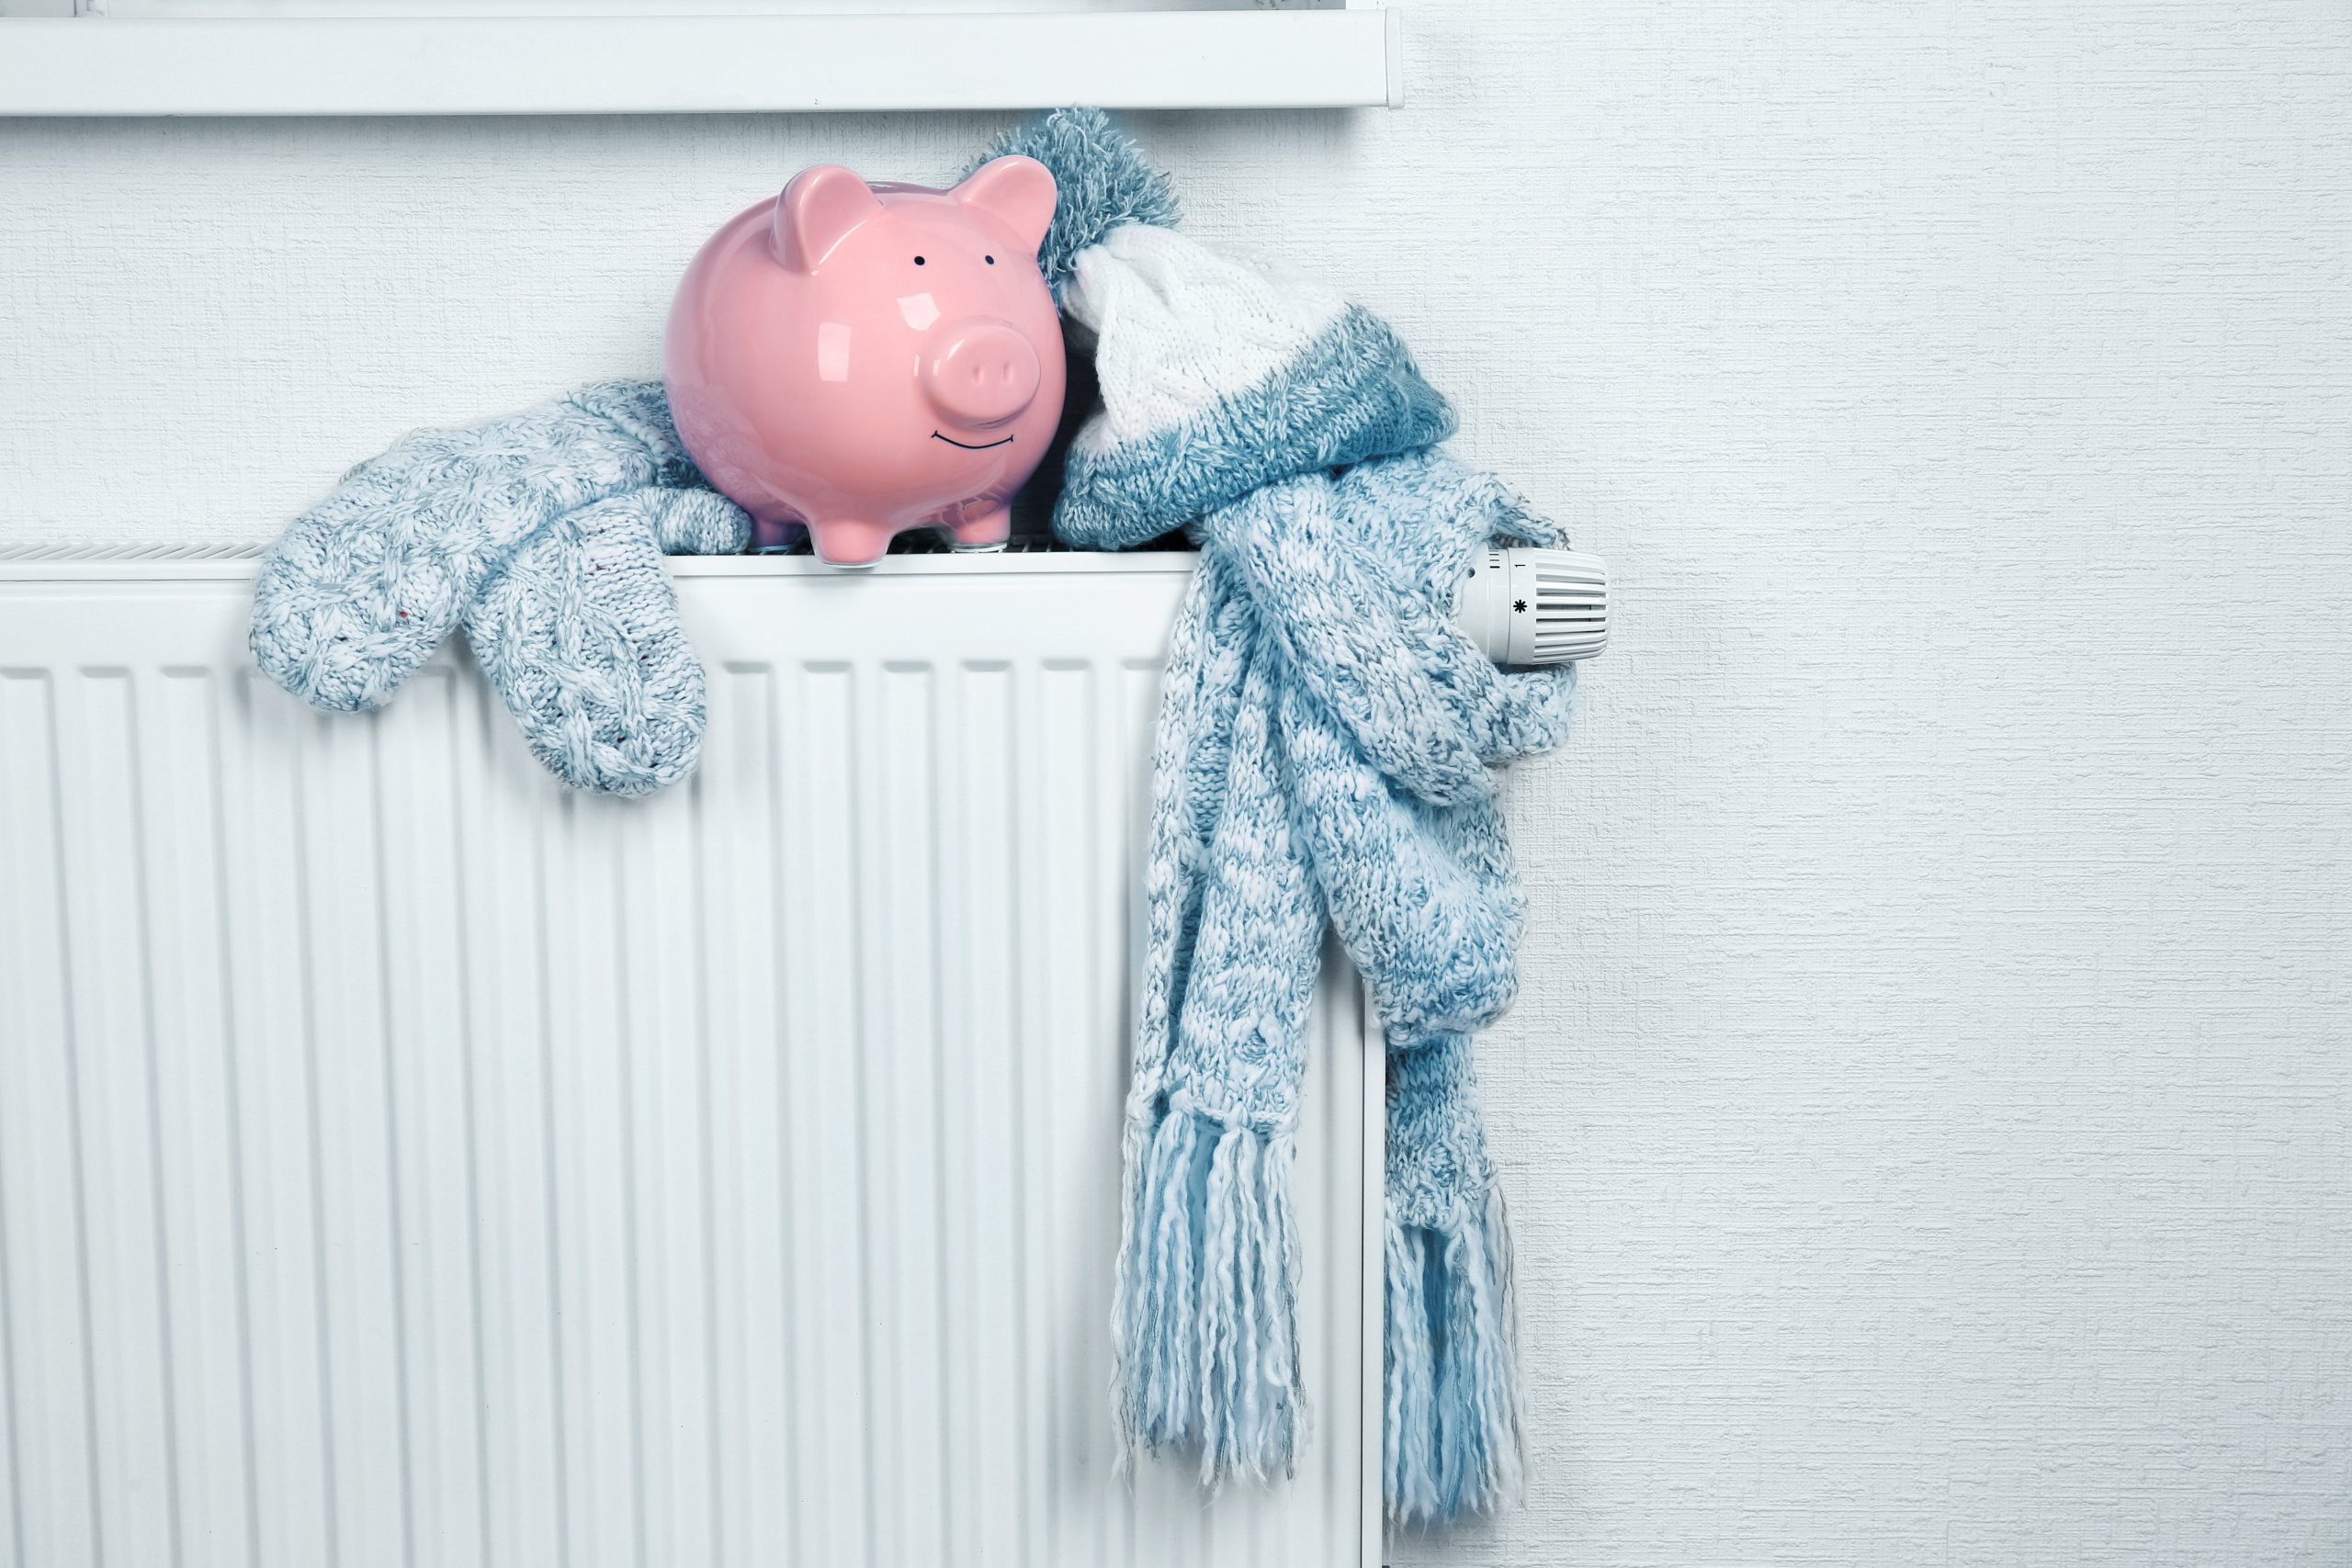 Pig sitting next to a scarf on a radiator